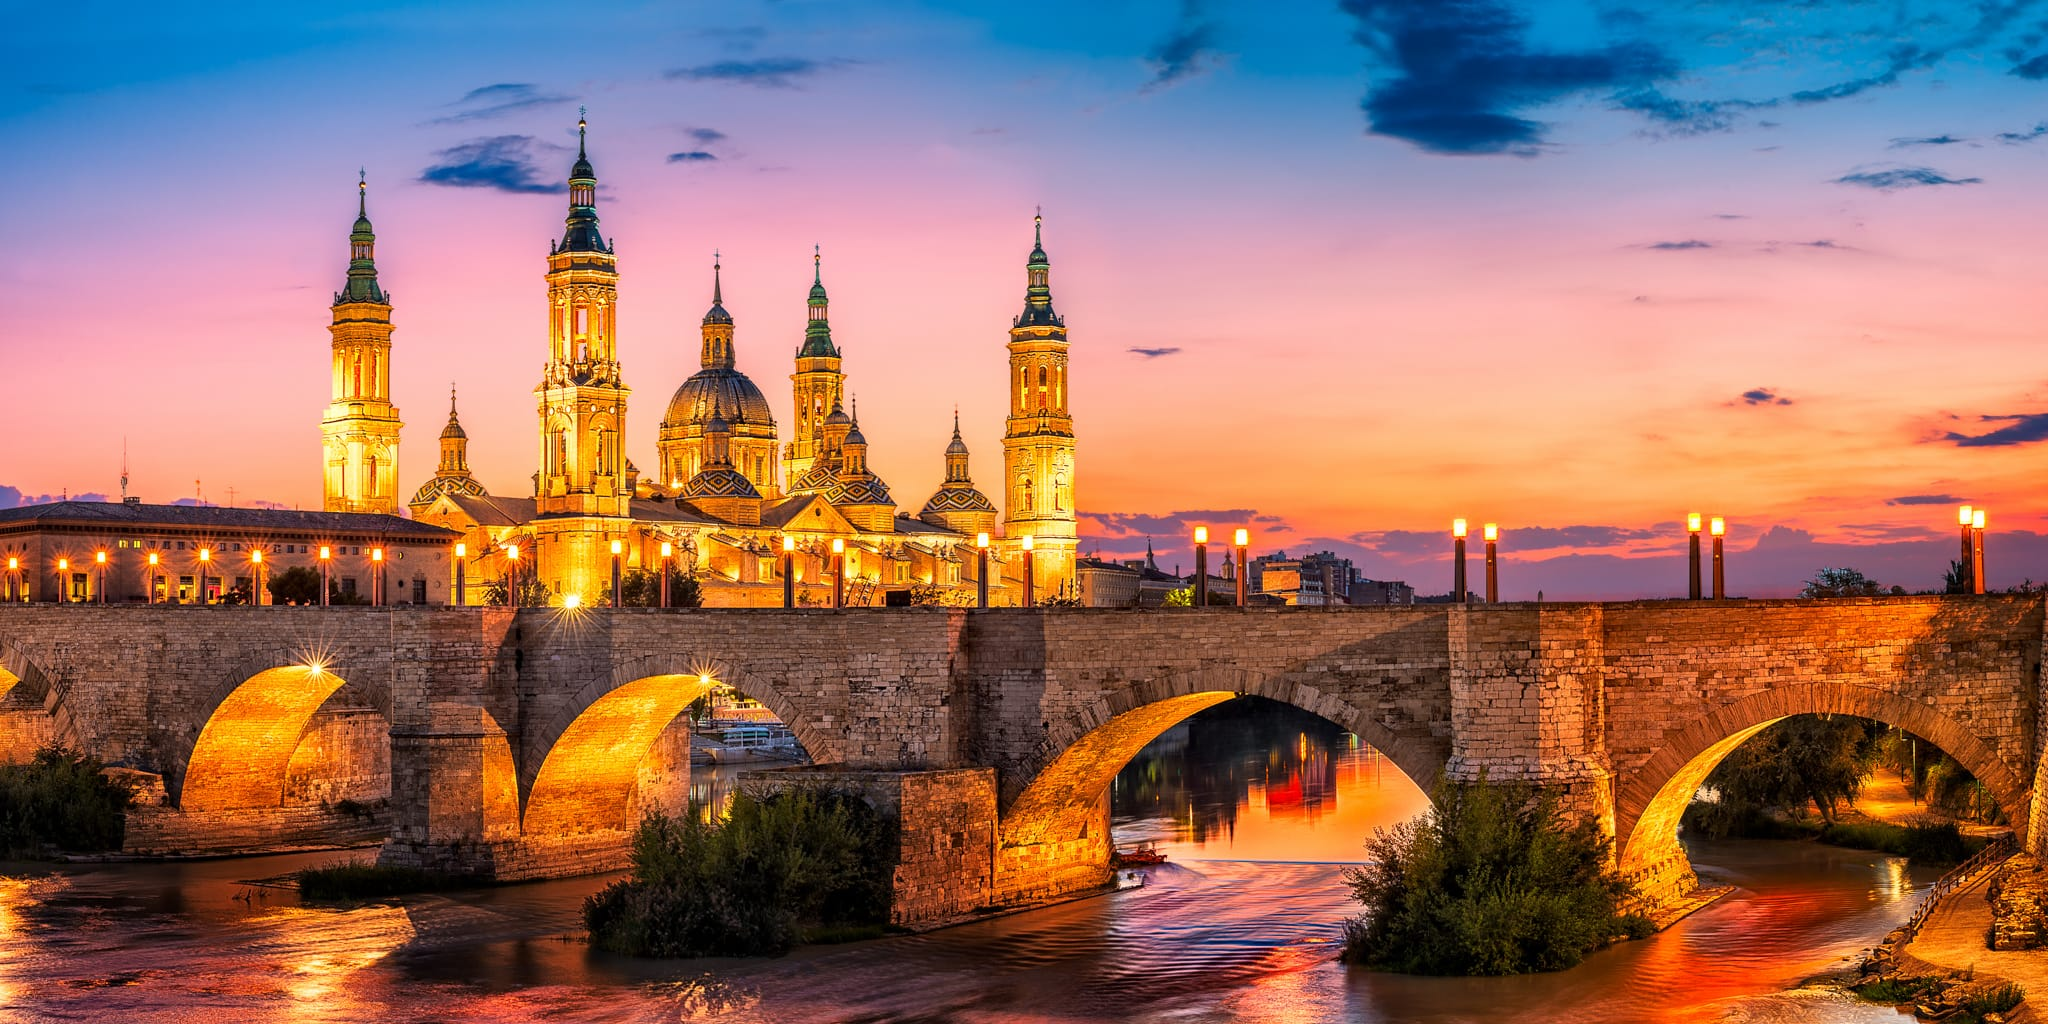 The El Pilar Basilica | Zaragoza, Spain